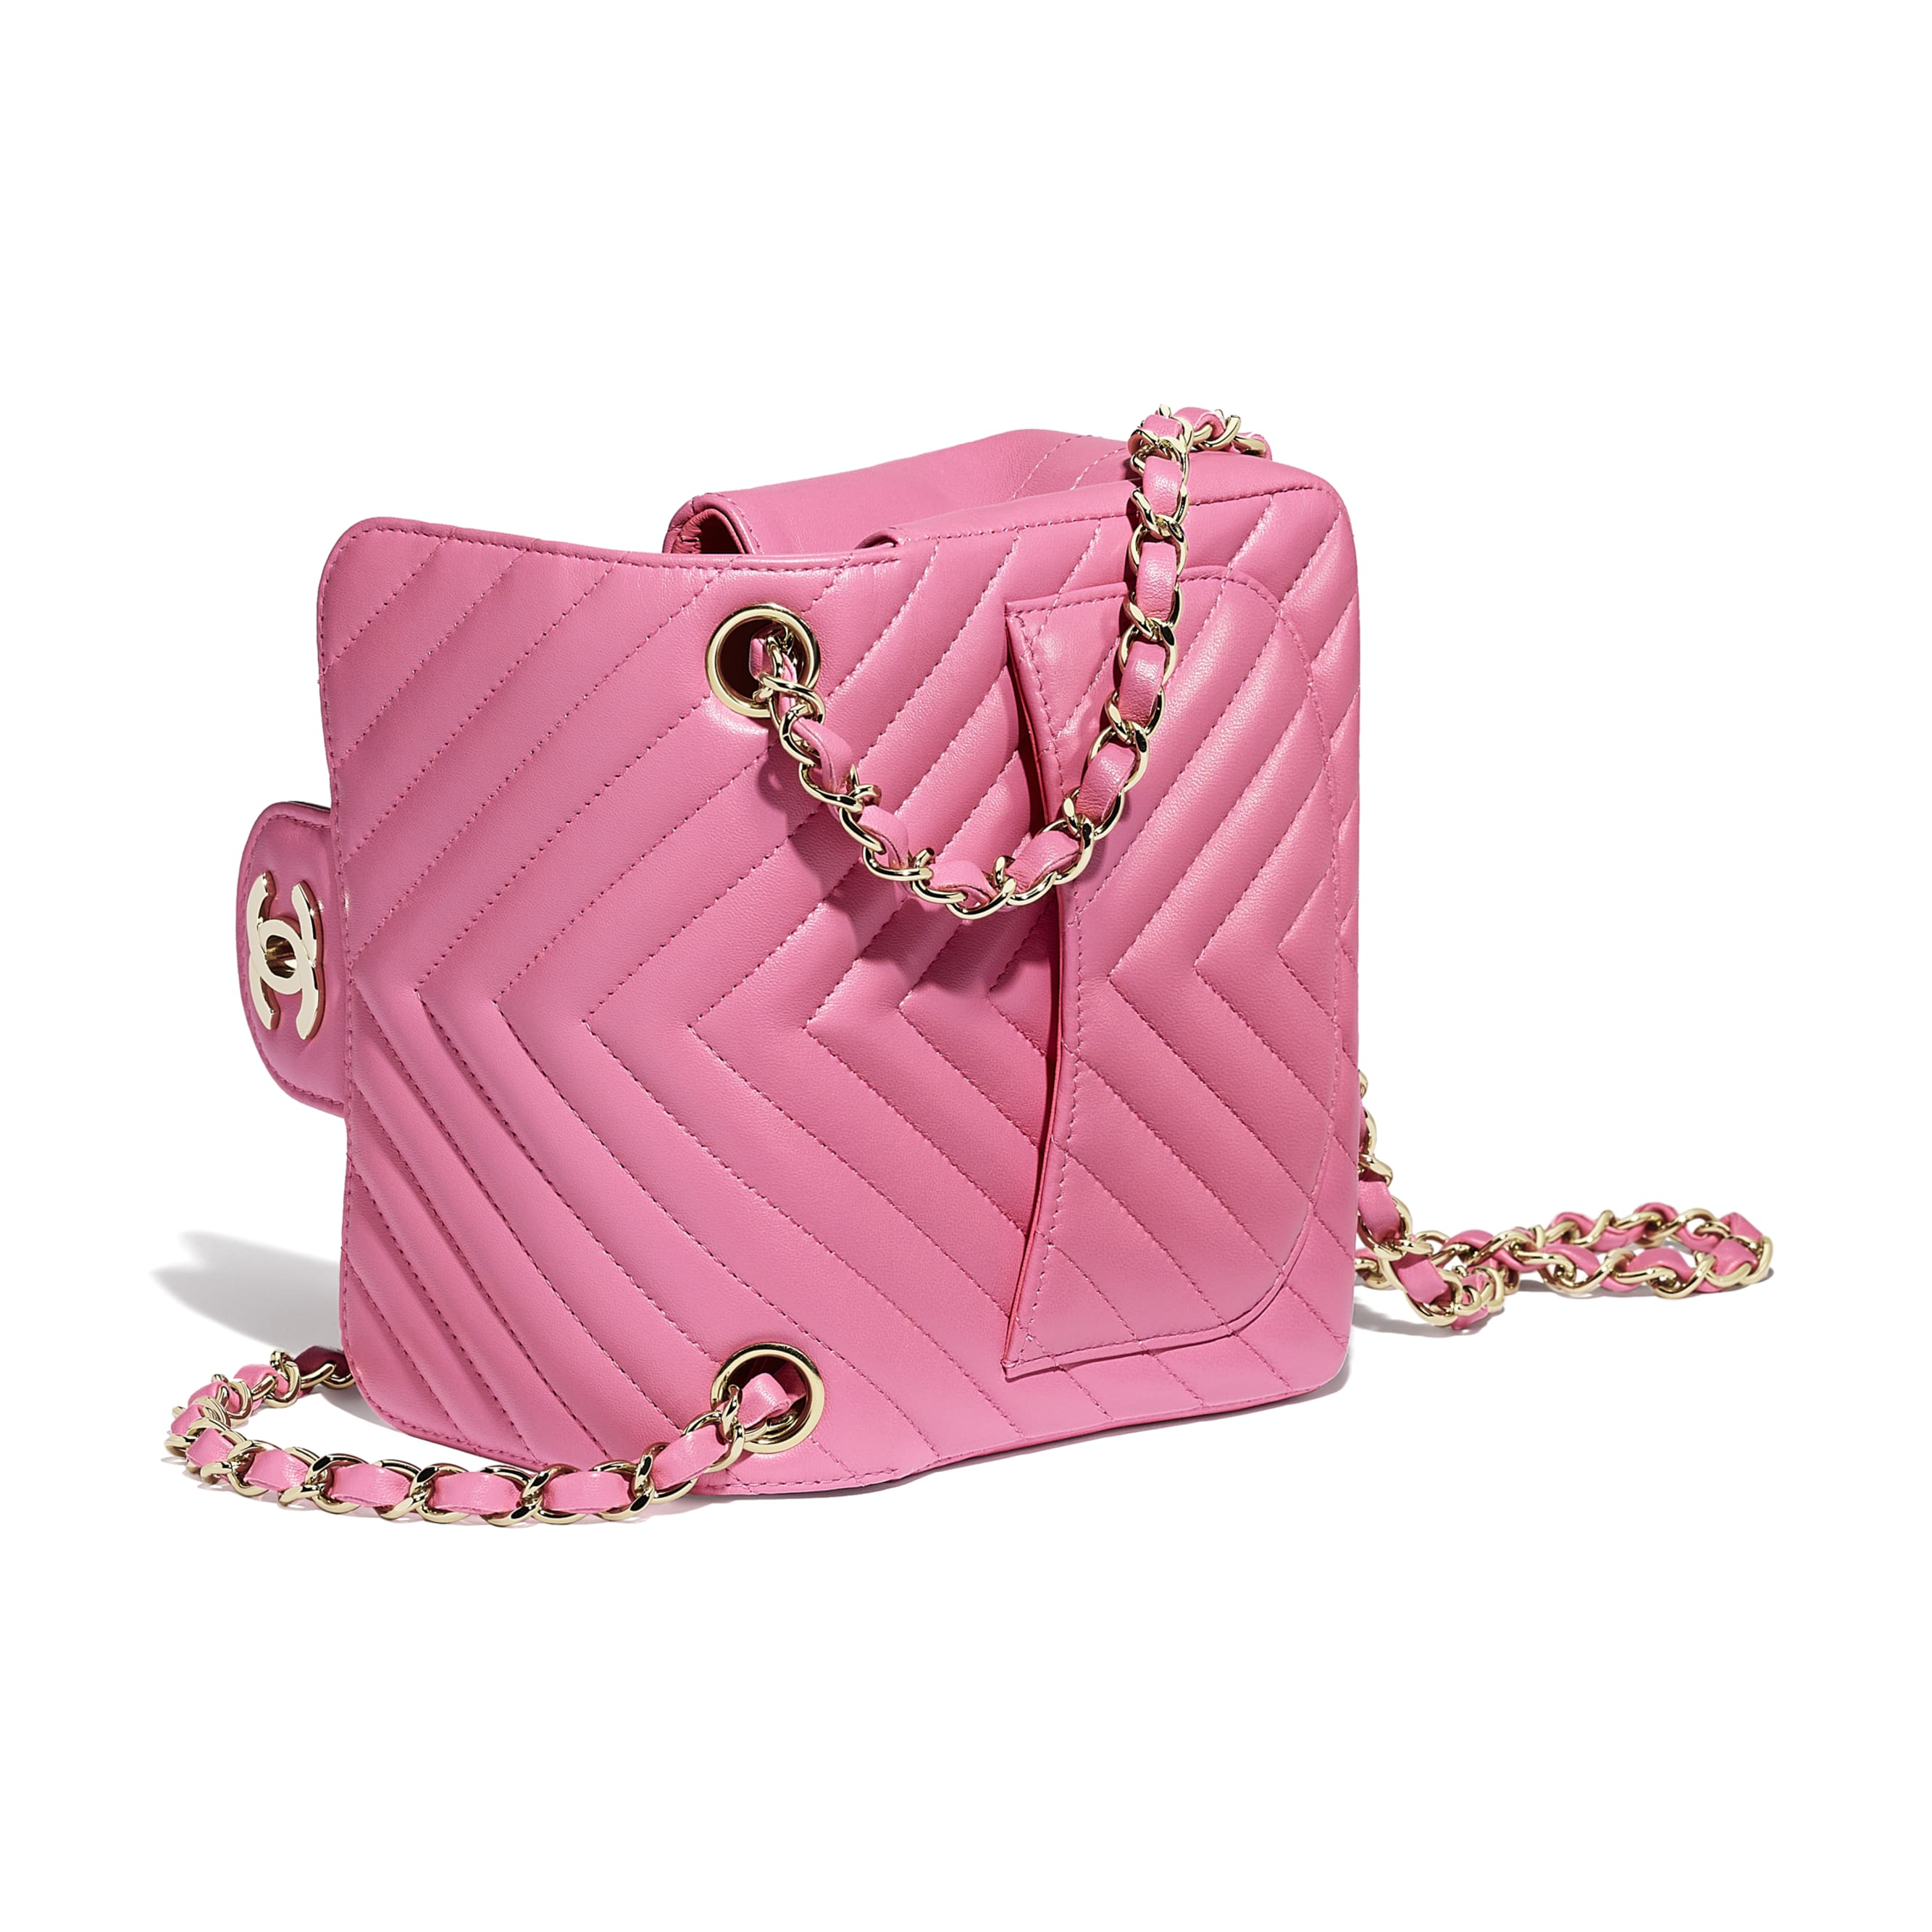 8dbd8e4335367 Mini flap bag pink lambskin gold tone metal lambskin gold tone metal  packshot other a jpg